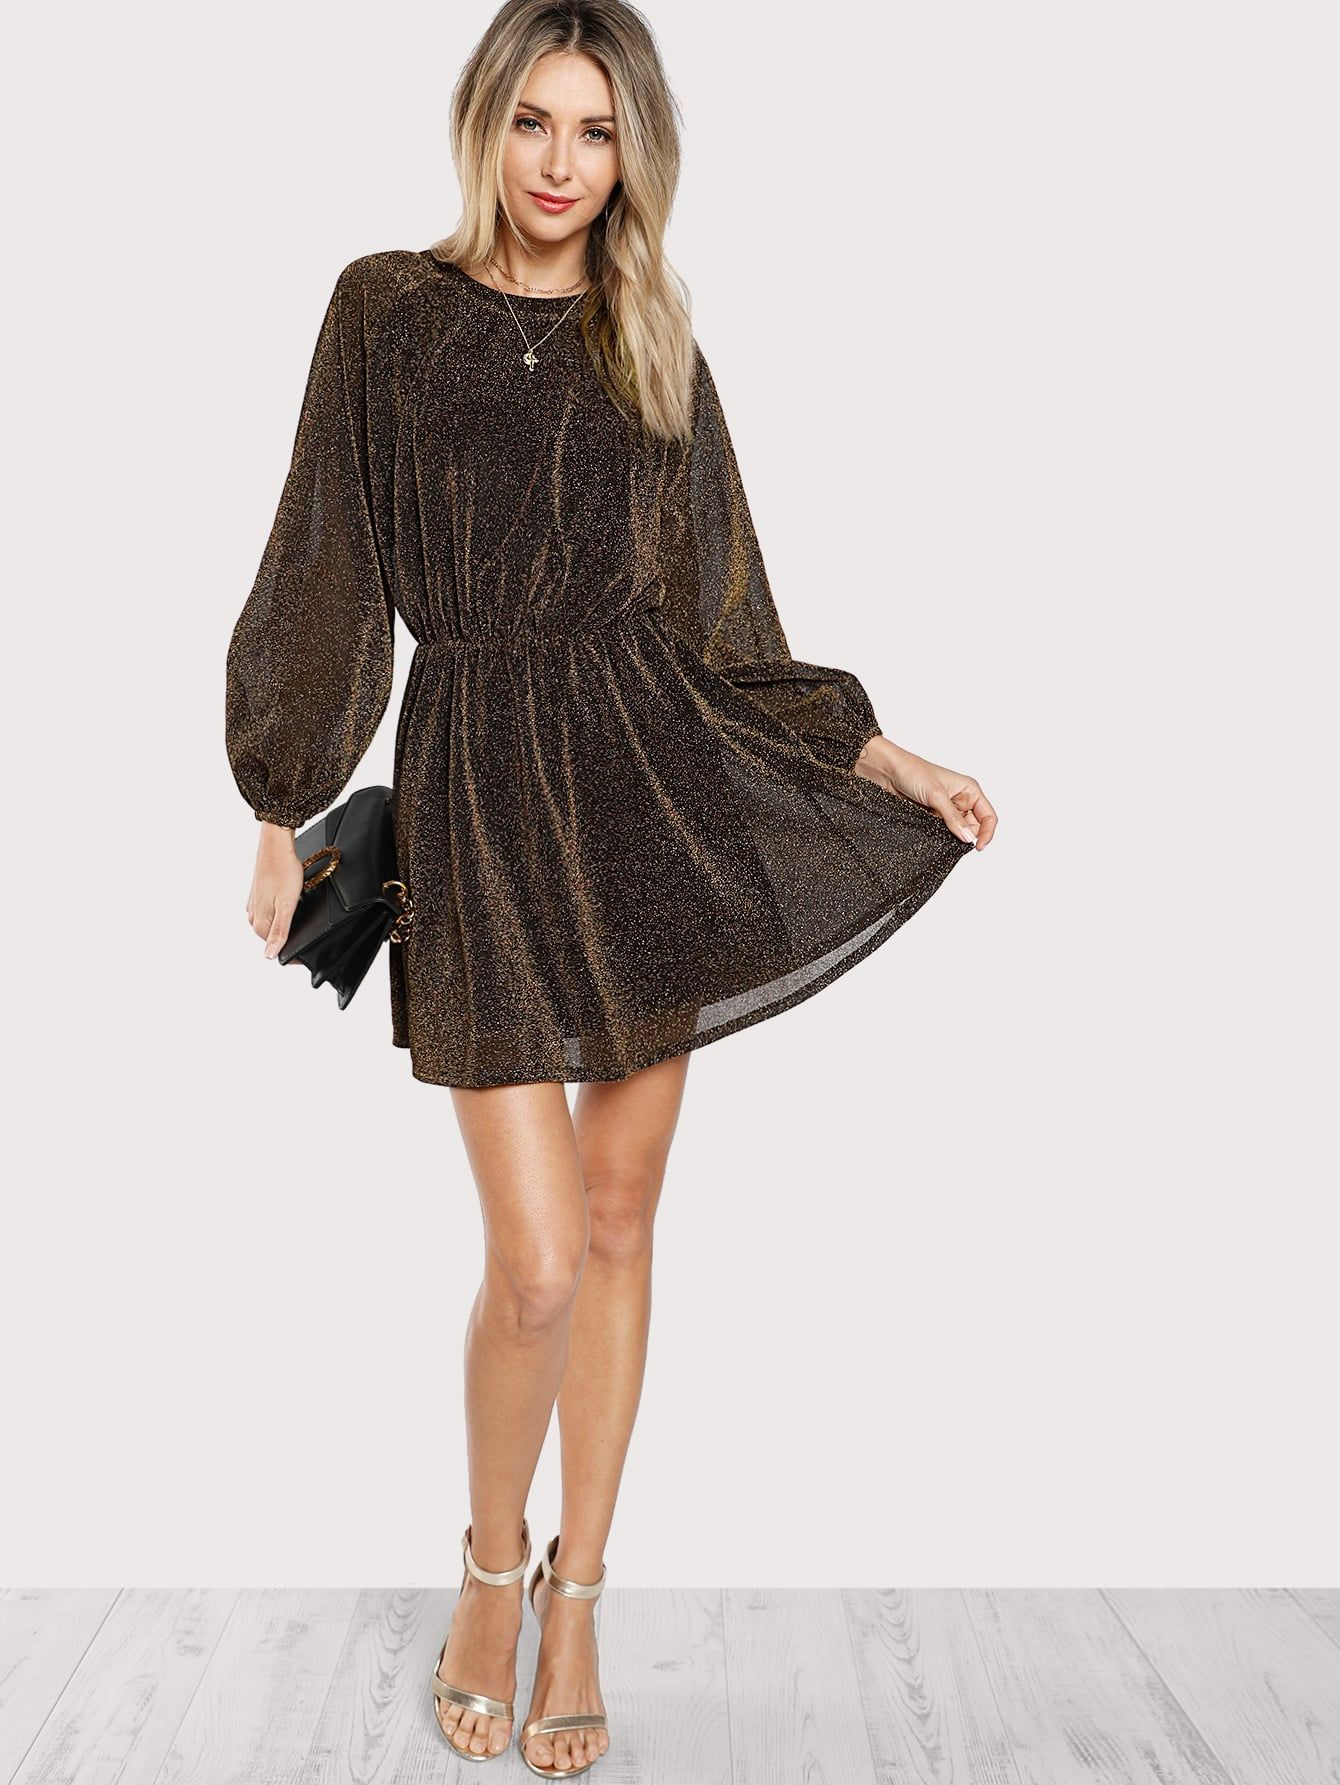 7c05c5c9b Elegant Button Plain Shift Round Neck Long Sleeve Natural Brown Short  Length Bishop Sleeve Transparent Dress with Lining